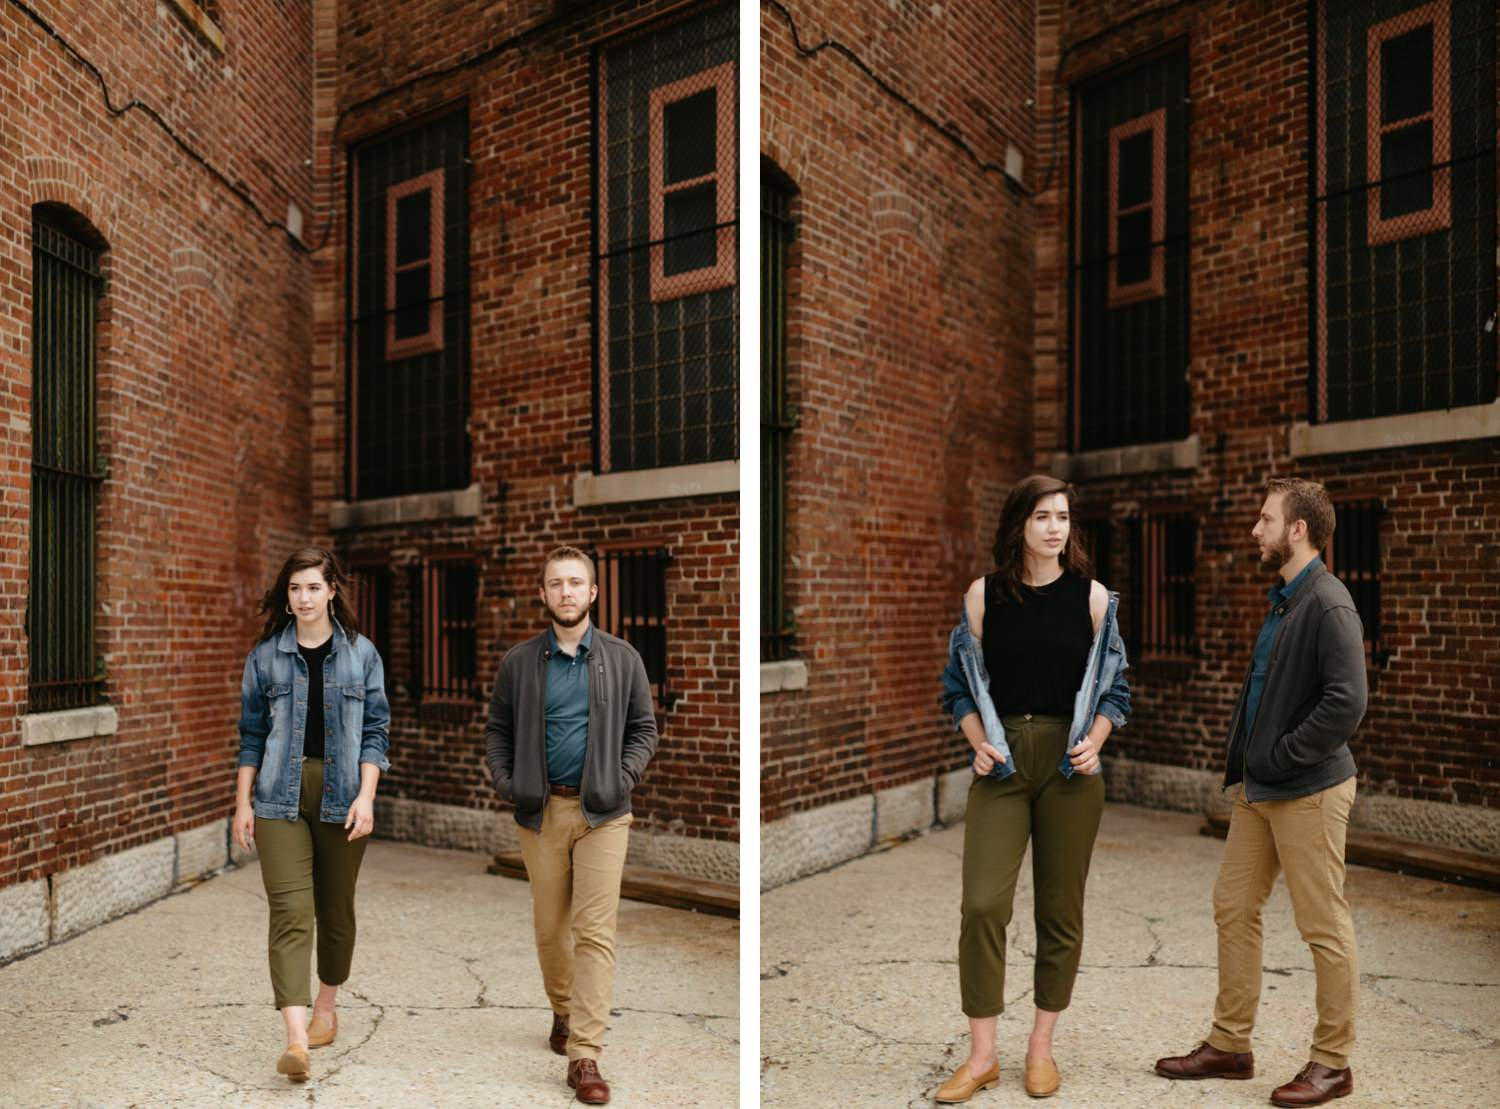 downtown-indianapolis-engagement-session-rooftop-indianapolis-engagement-photographer-kelly-marcelo-photography012.JPG